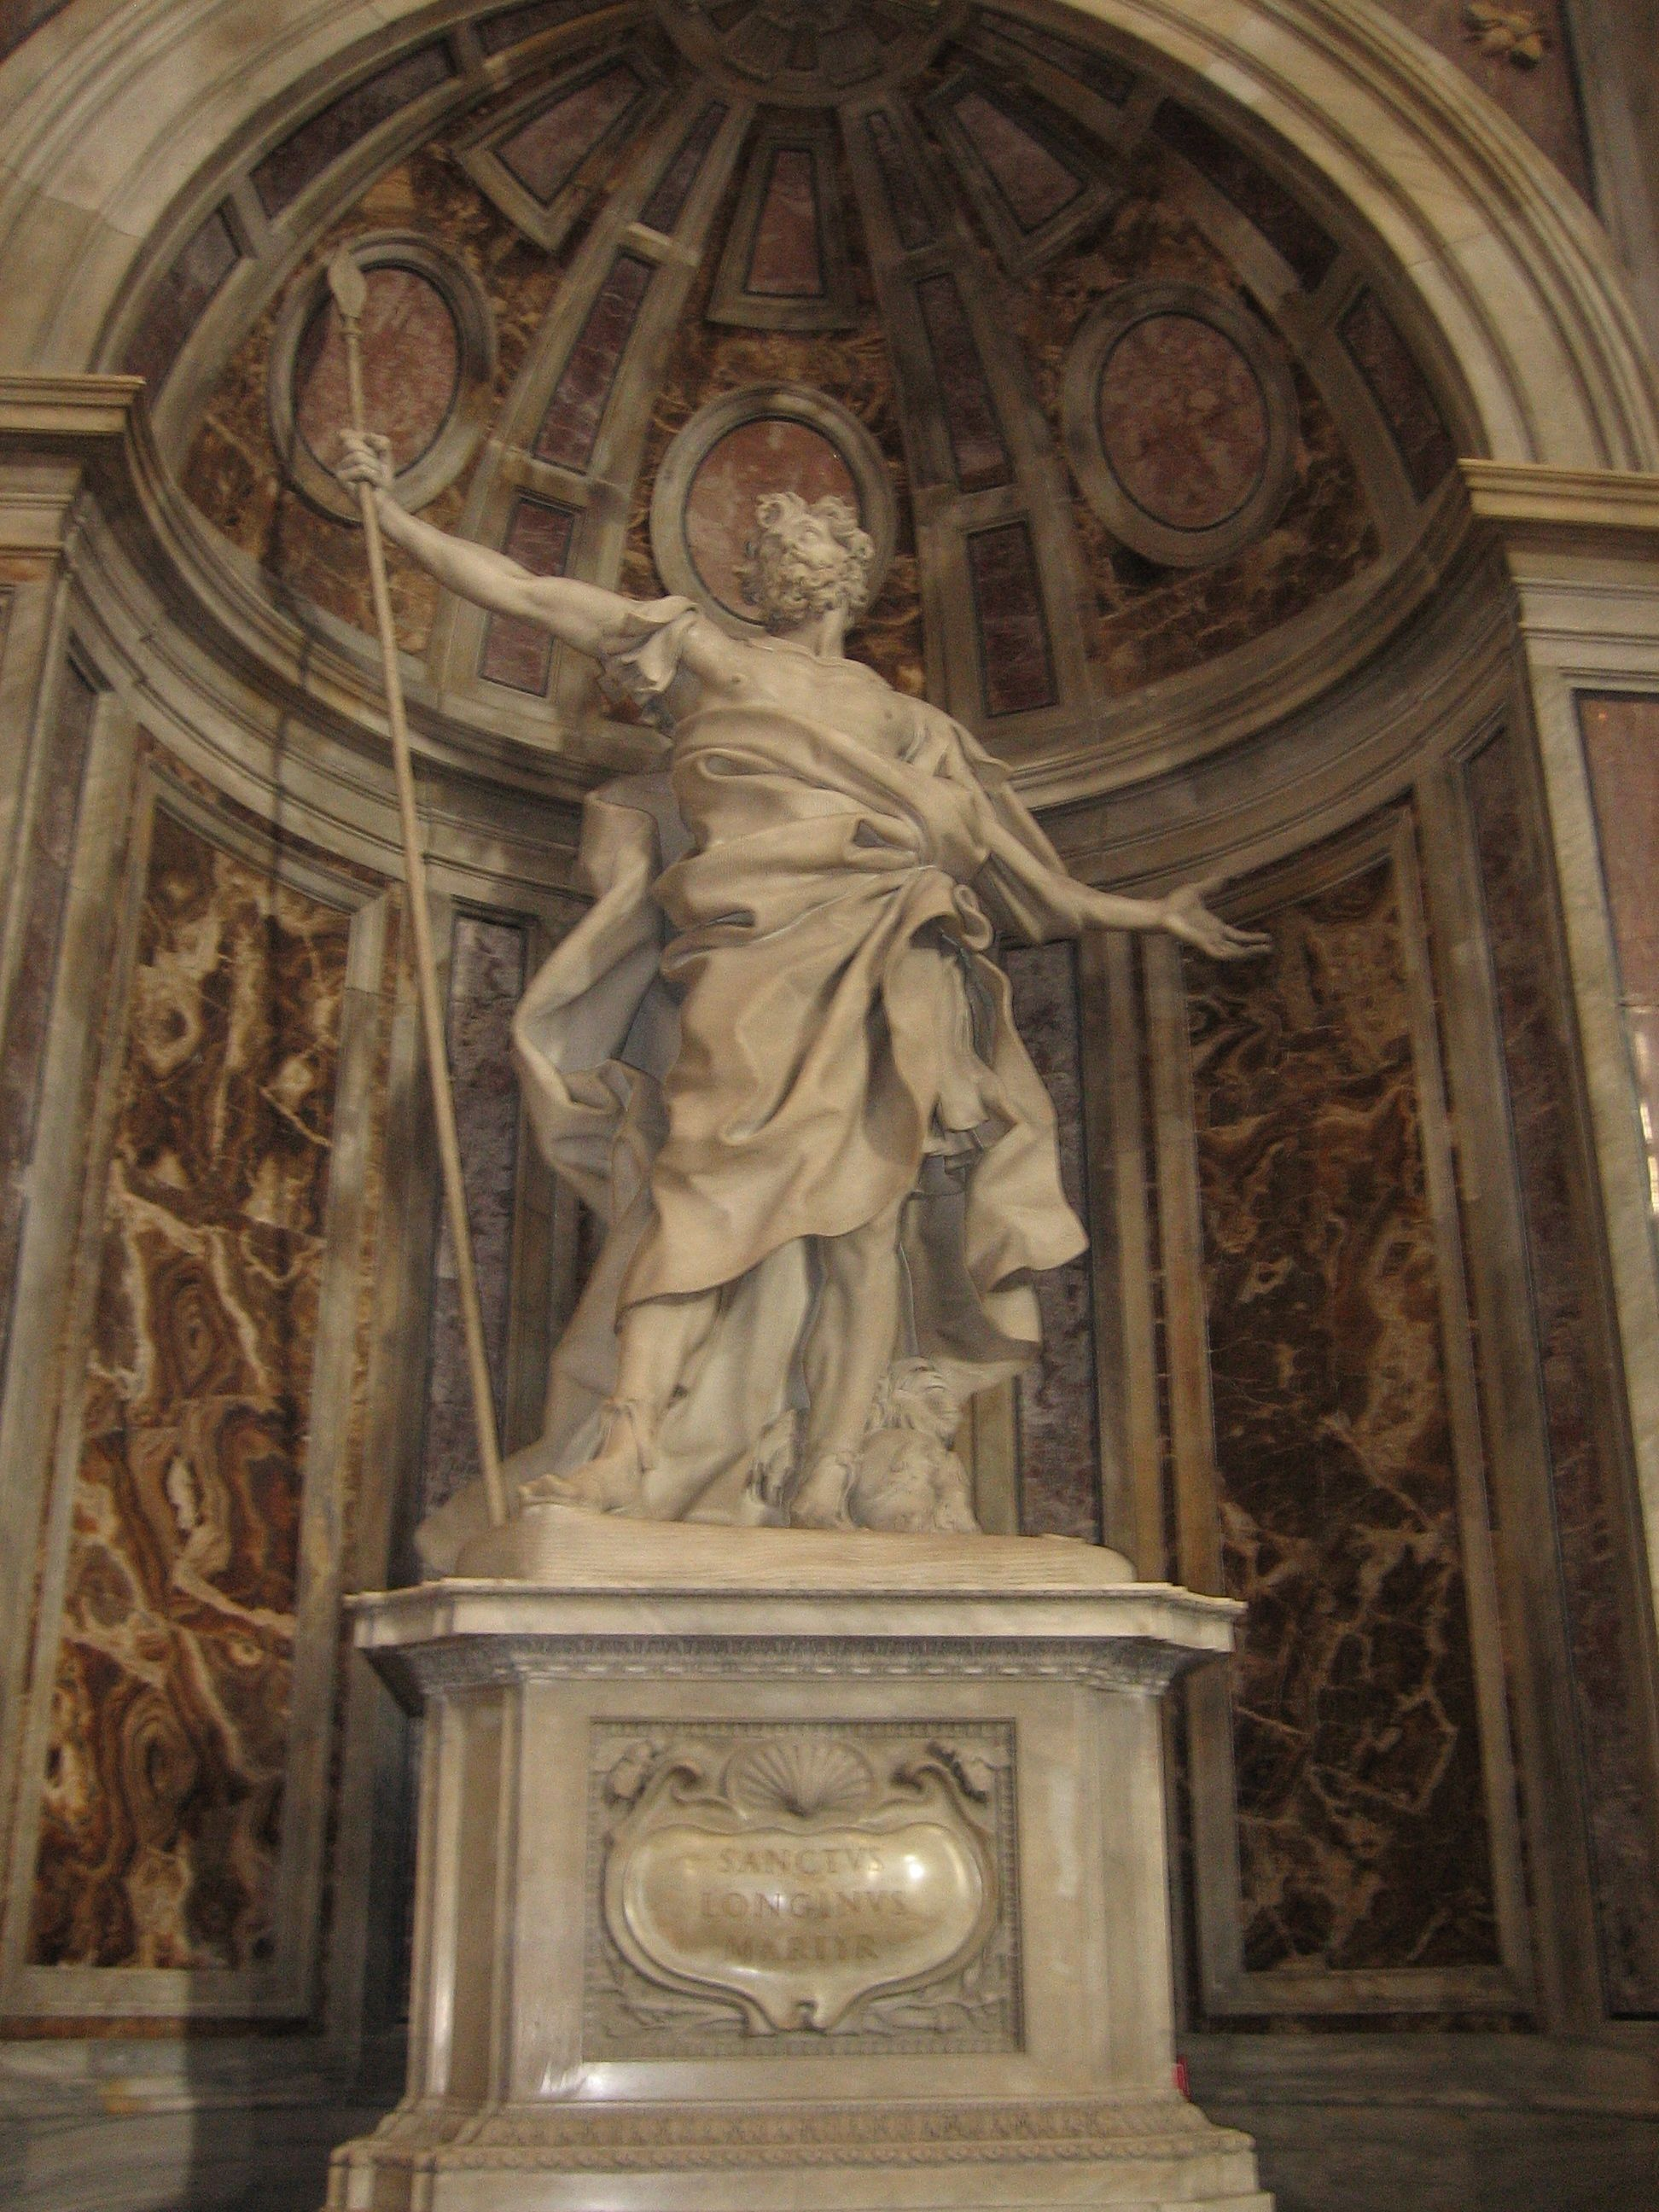 S._LONGINO, 1638, located  in the niche of St Peter's in the Vatican City